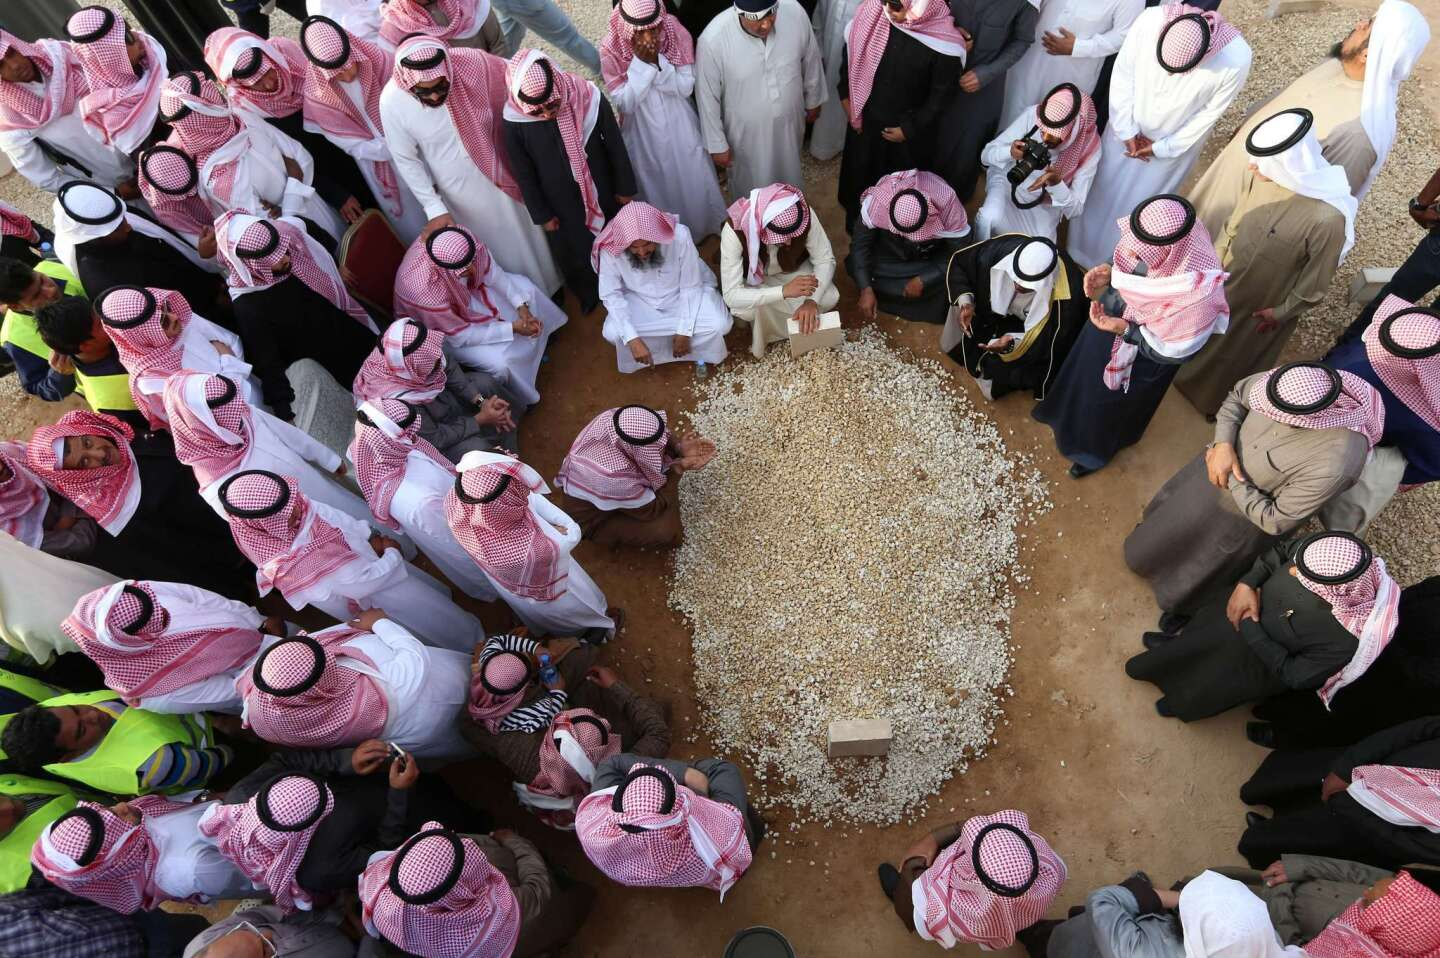 Mourners gather around the grave of Saudi Arabia's King Abdullah at Al Oud cemetery in Riyadh on Jan. 23 following his death in the early hours of the morning.